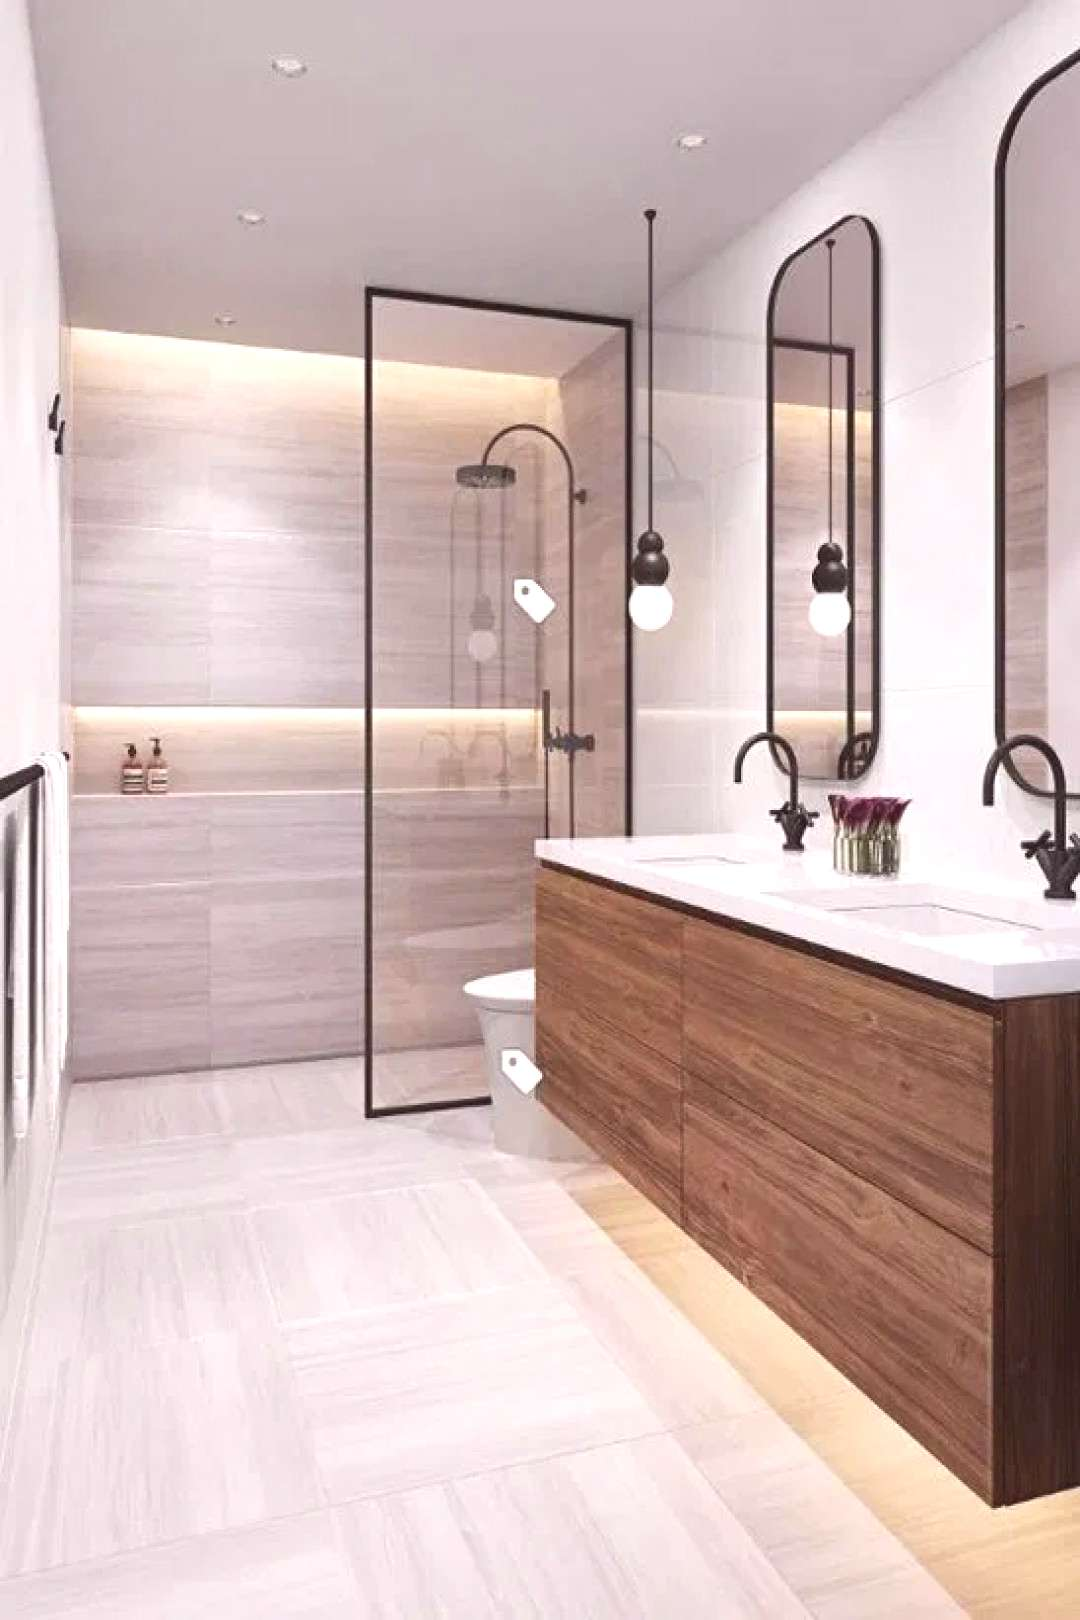 44 magnificient scandinavian bathroom design ideas that looks cool 28 | Bloghenni.online